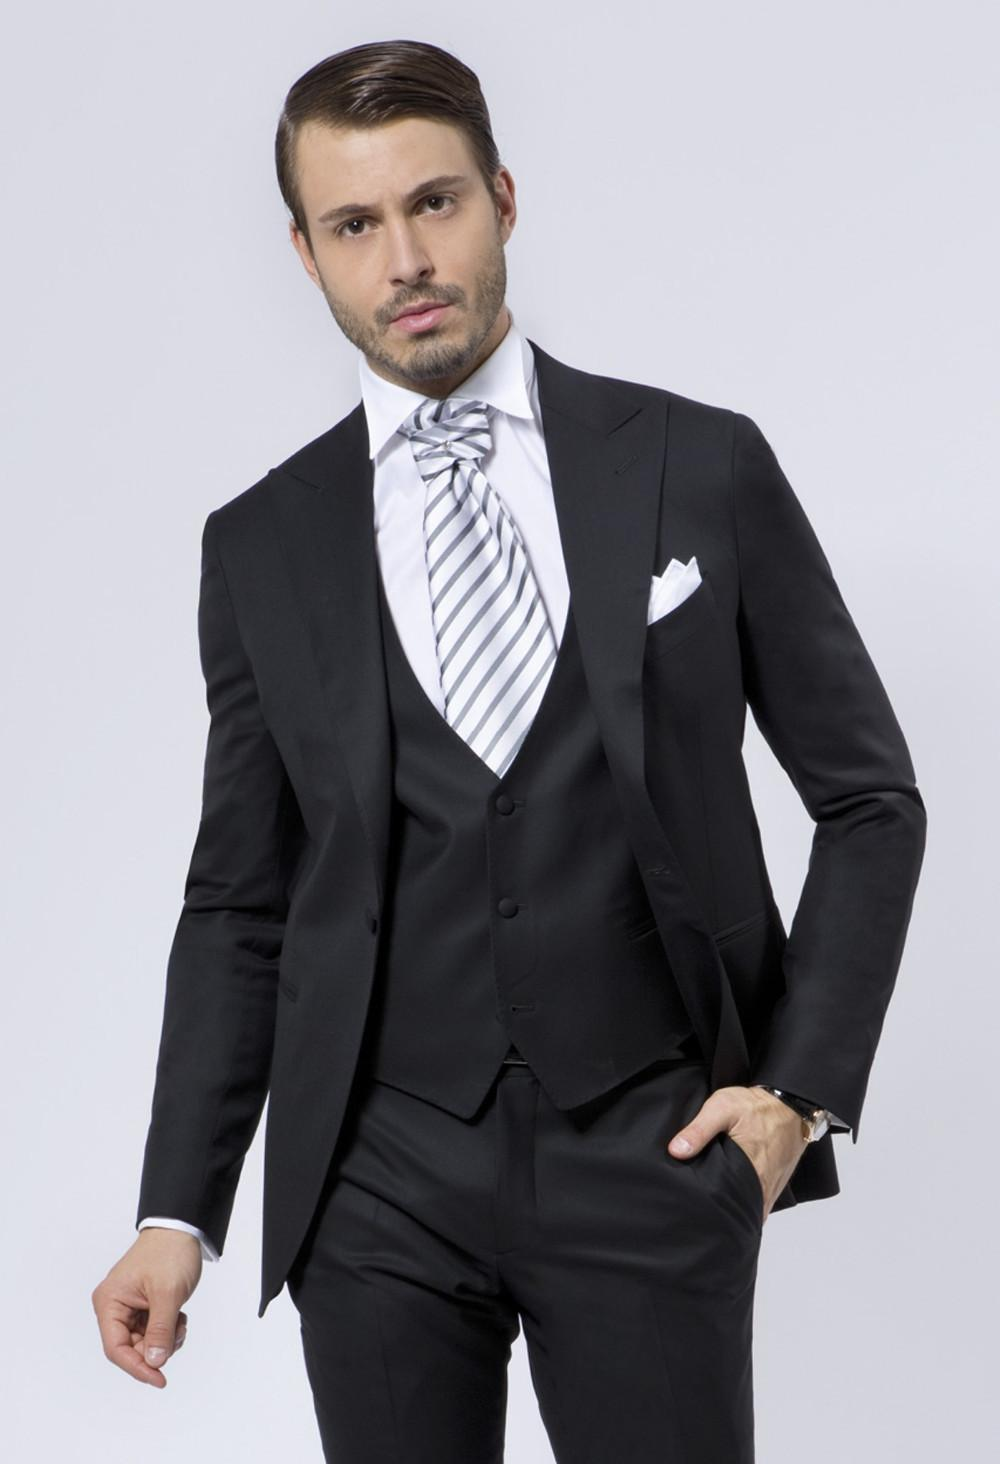 Fashion Style One On Black Groom Tuxedos Groomsmen Mens Wedding Suits Prom Bridegroom Jacket Pants Vest Tie No 635 In From Men S Clothing